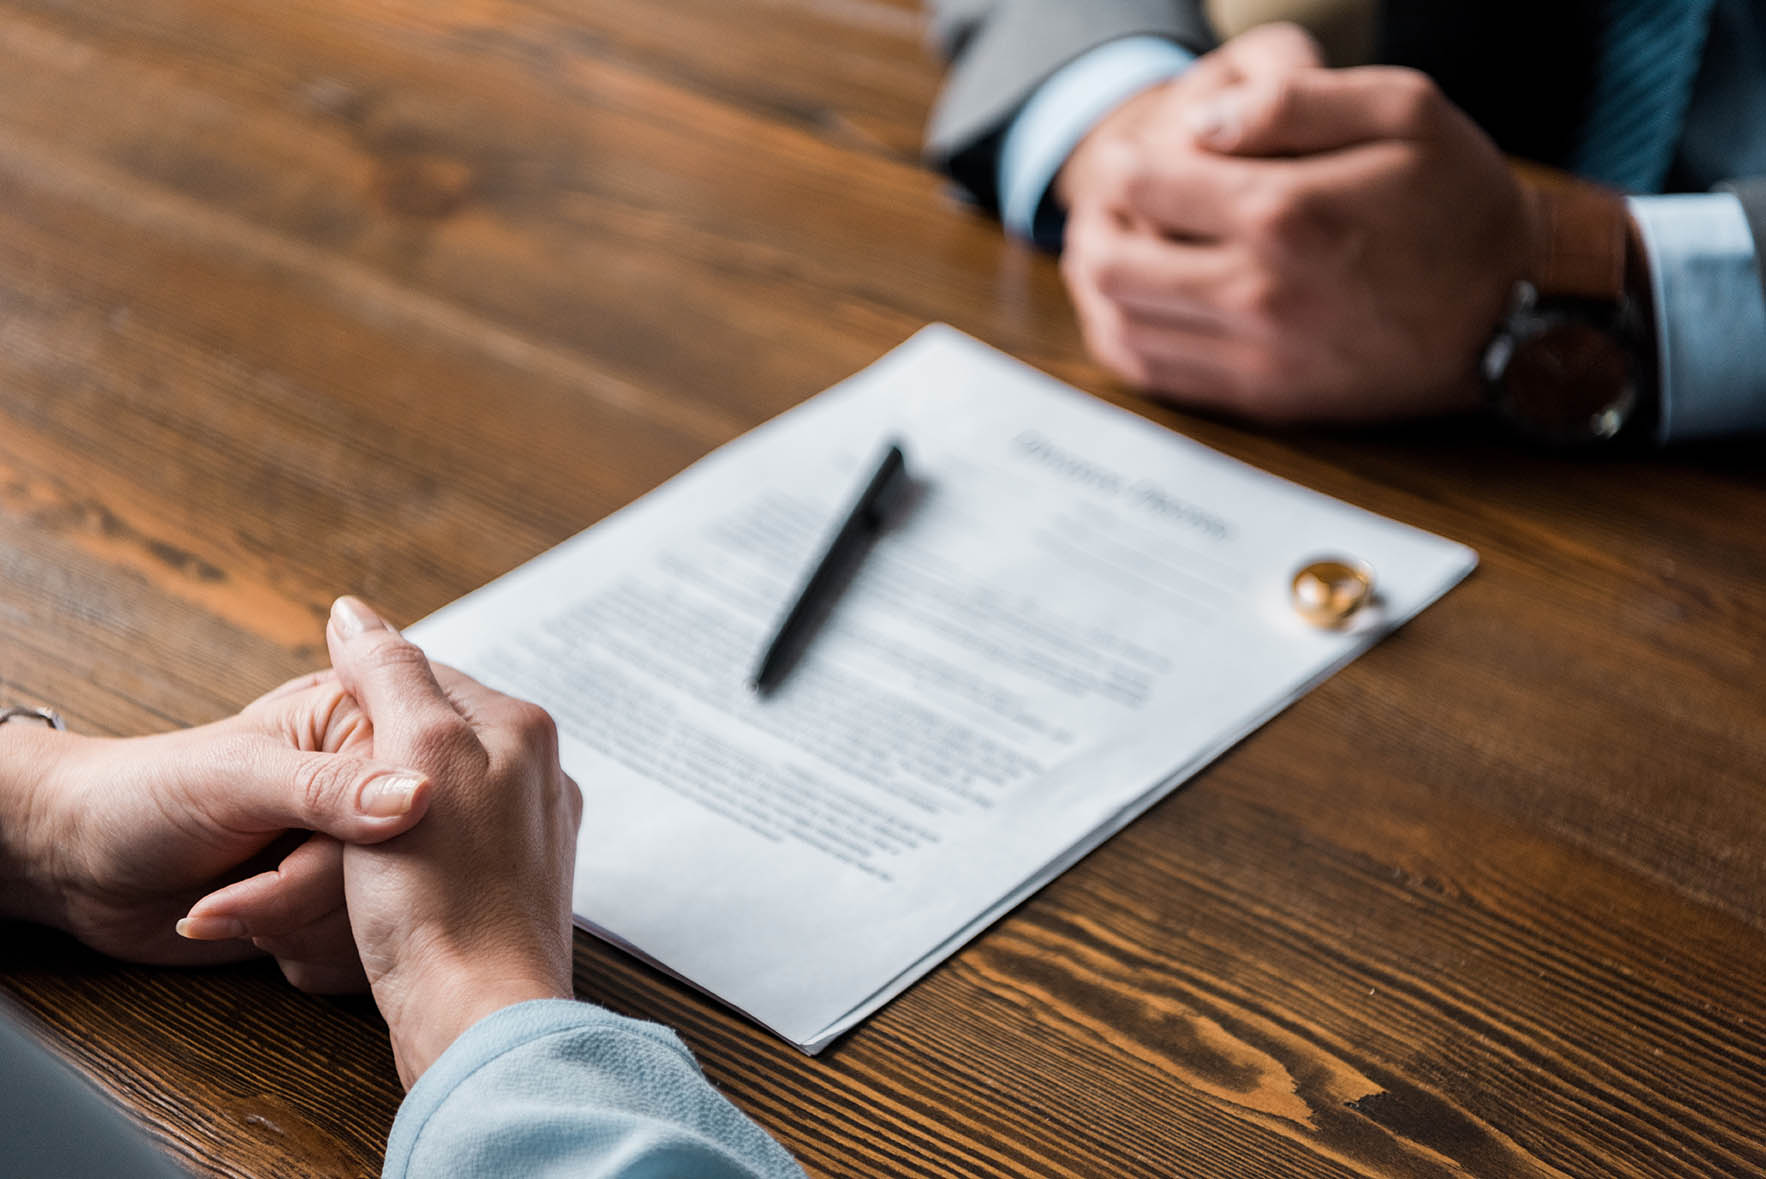 What Happens if My Spouse Does Not Sign the Divorce Papers?